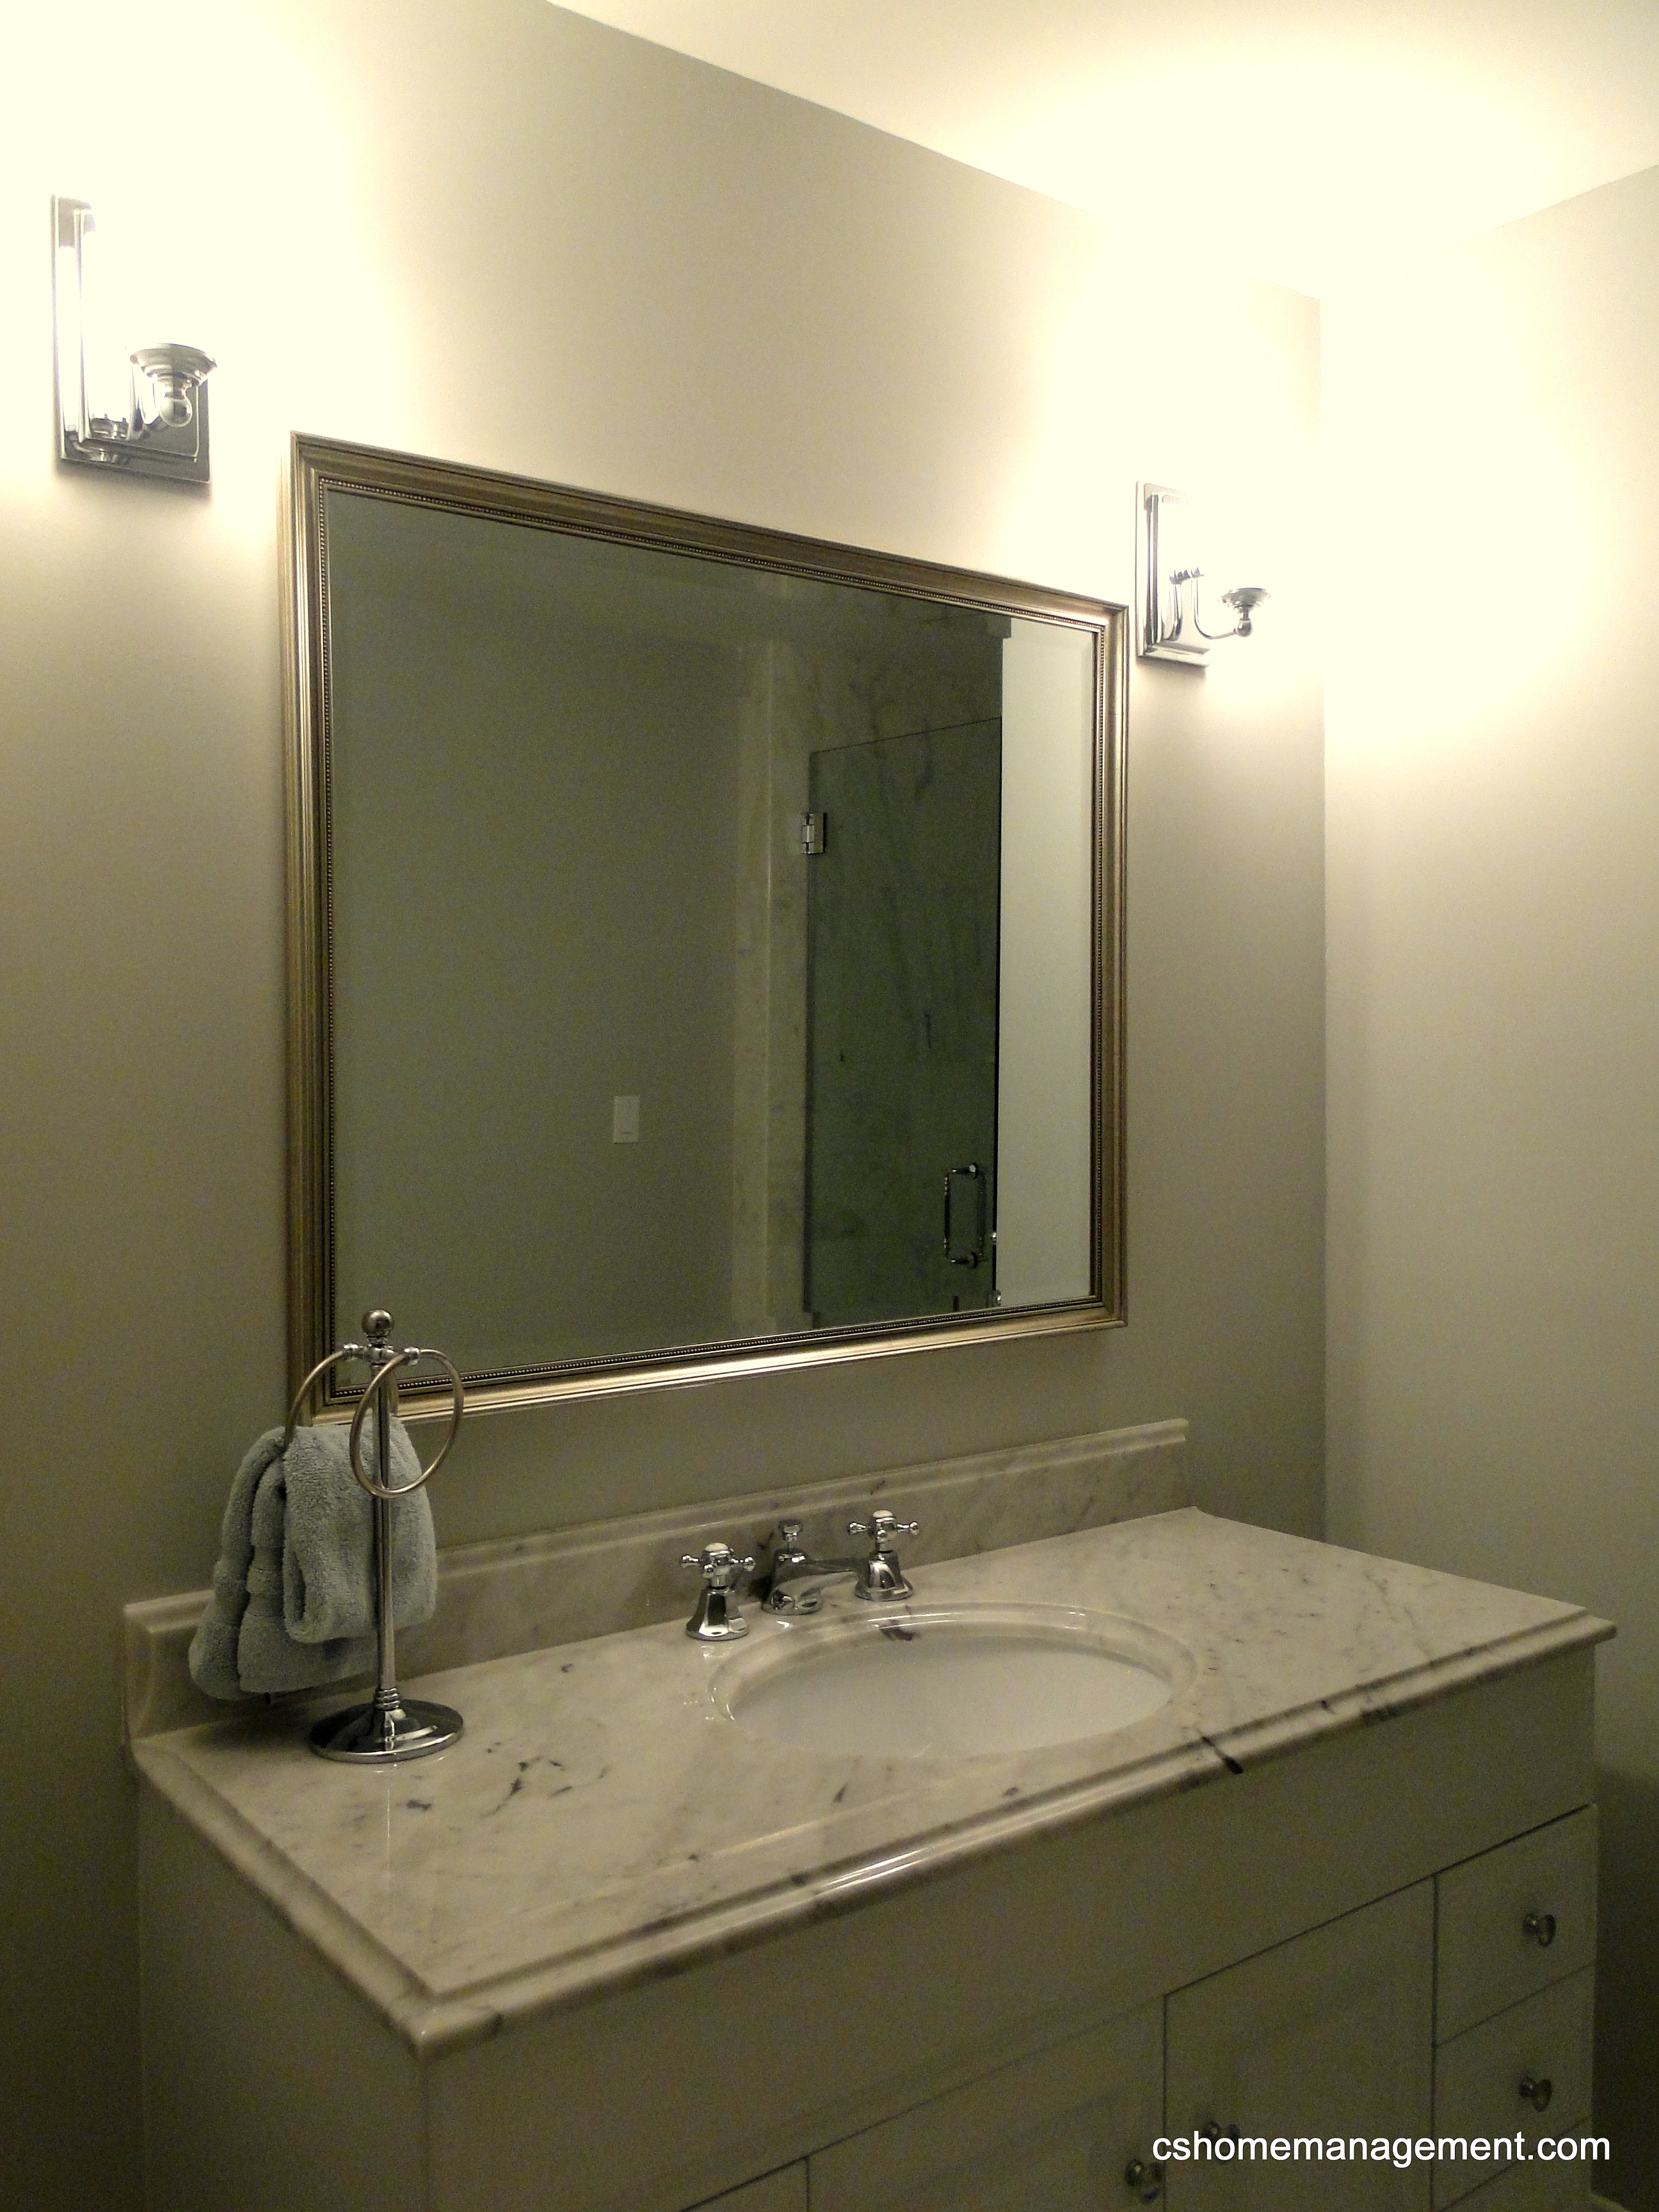 Bathroom spring cleaning cindy capalbo for Bathroom cleaning ideas